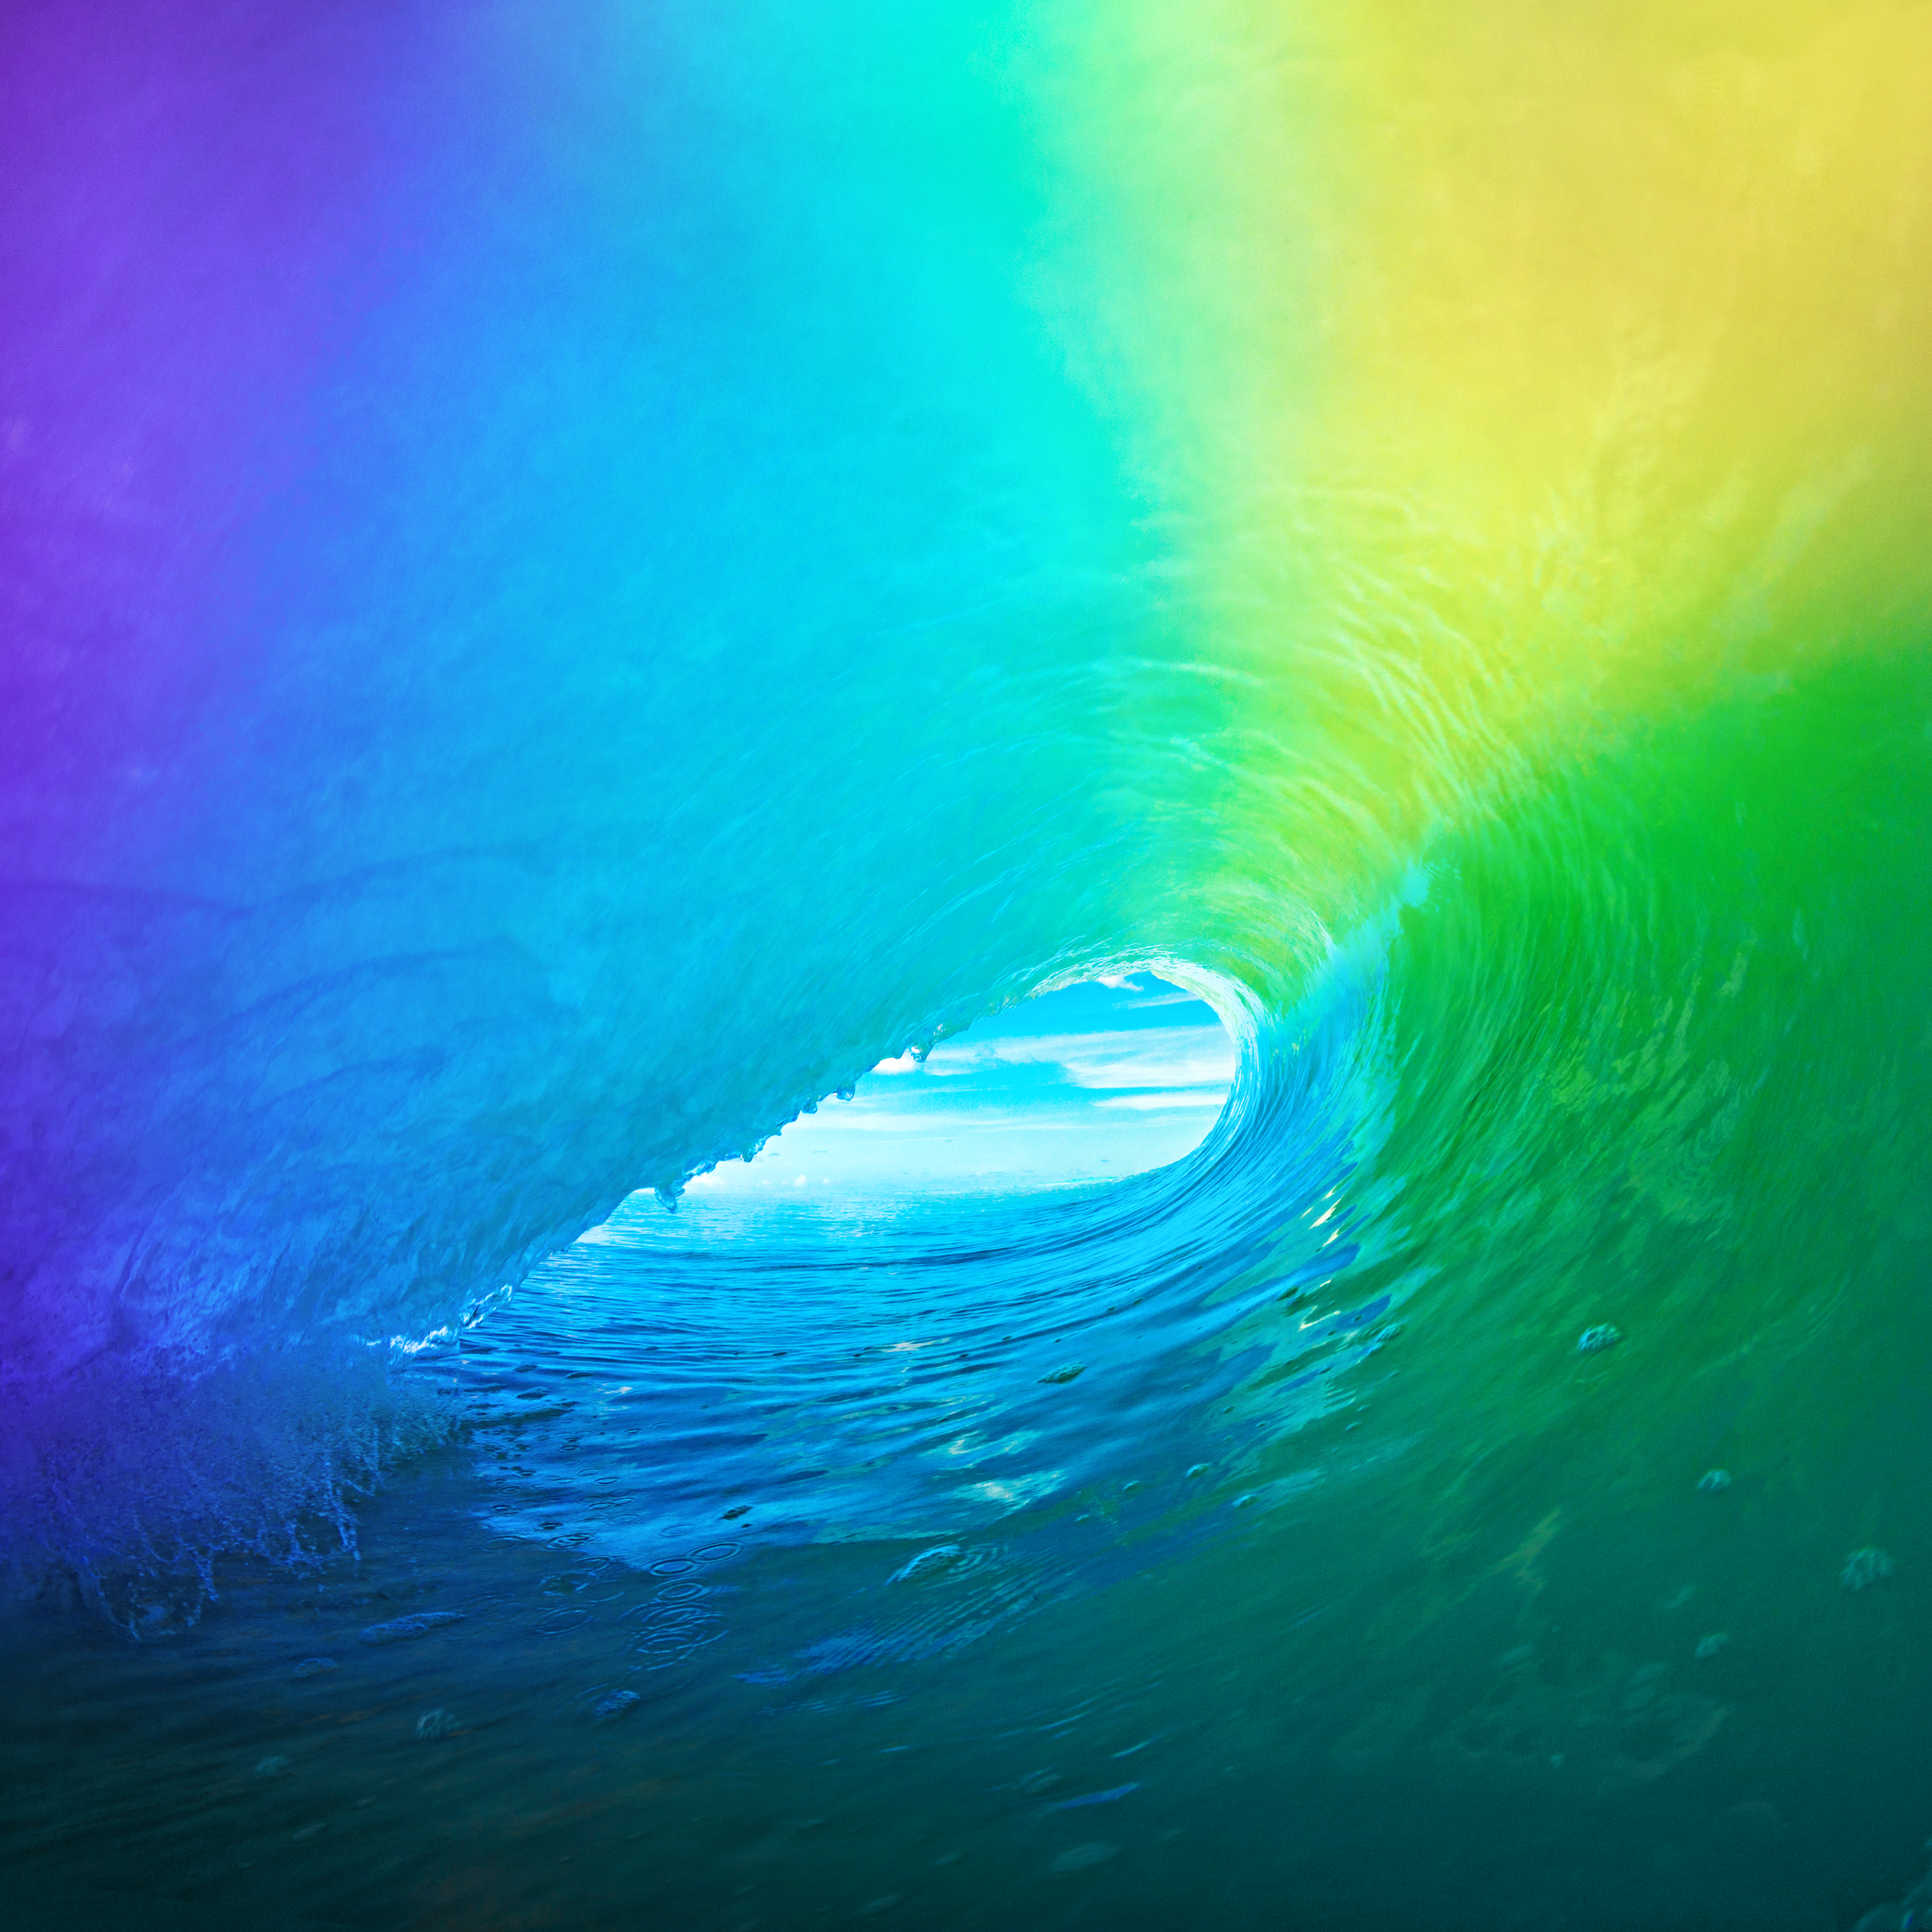 Download the New iOS 9 Wallpaper for iPhone   iClarified 2706x2706